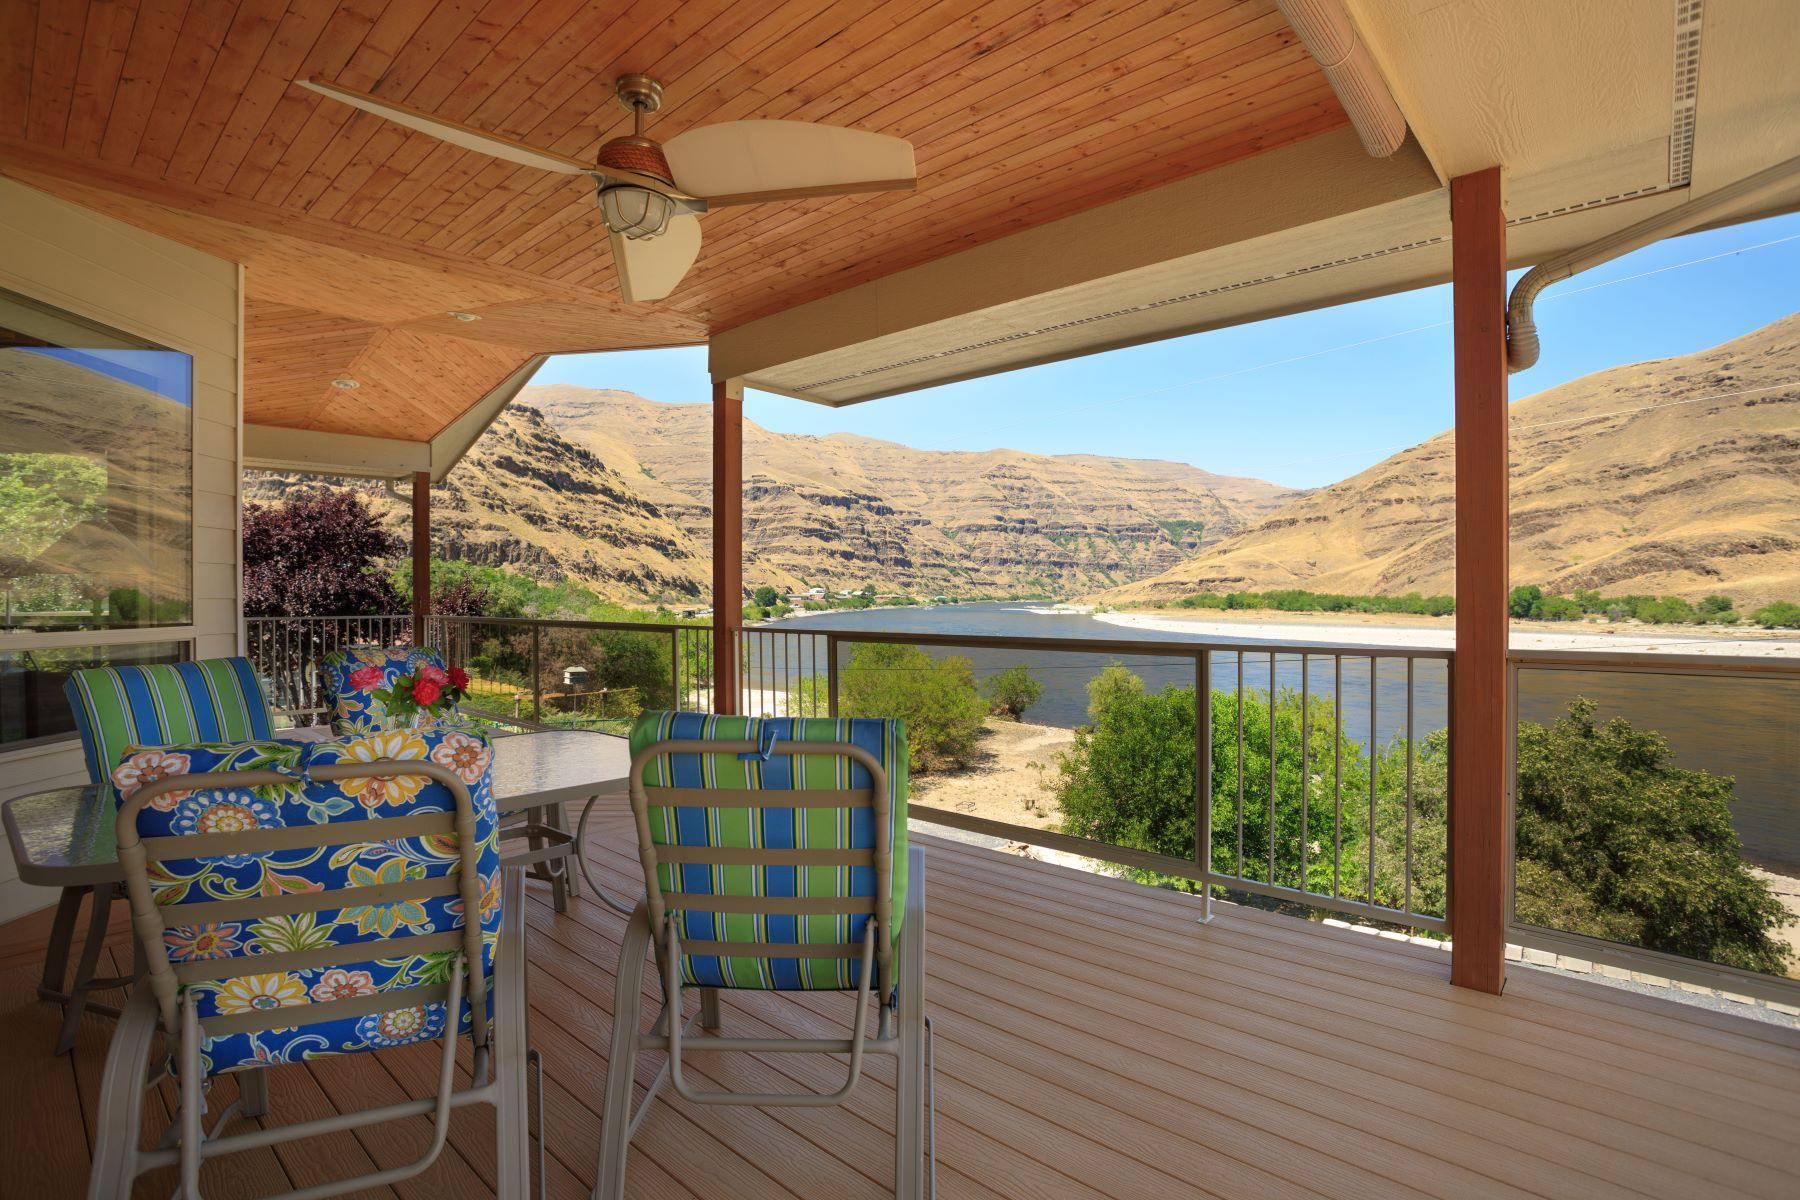 Single Family Home for Sale at Stunning Riverfront Property in Hells Canyon 4505 Rogersburg Rd Asotin, Washington 99402